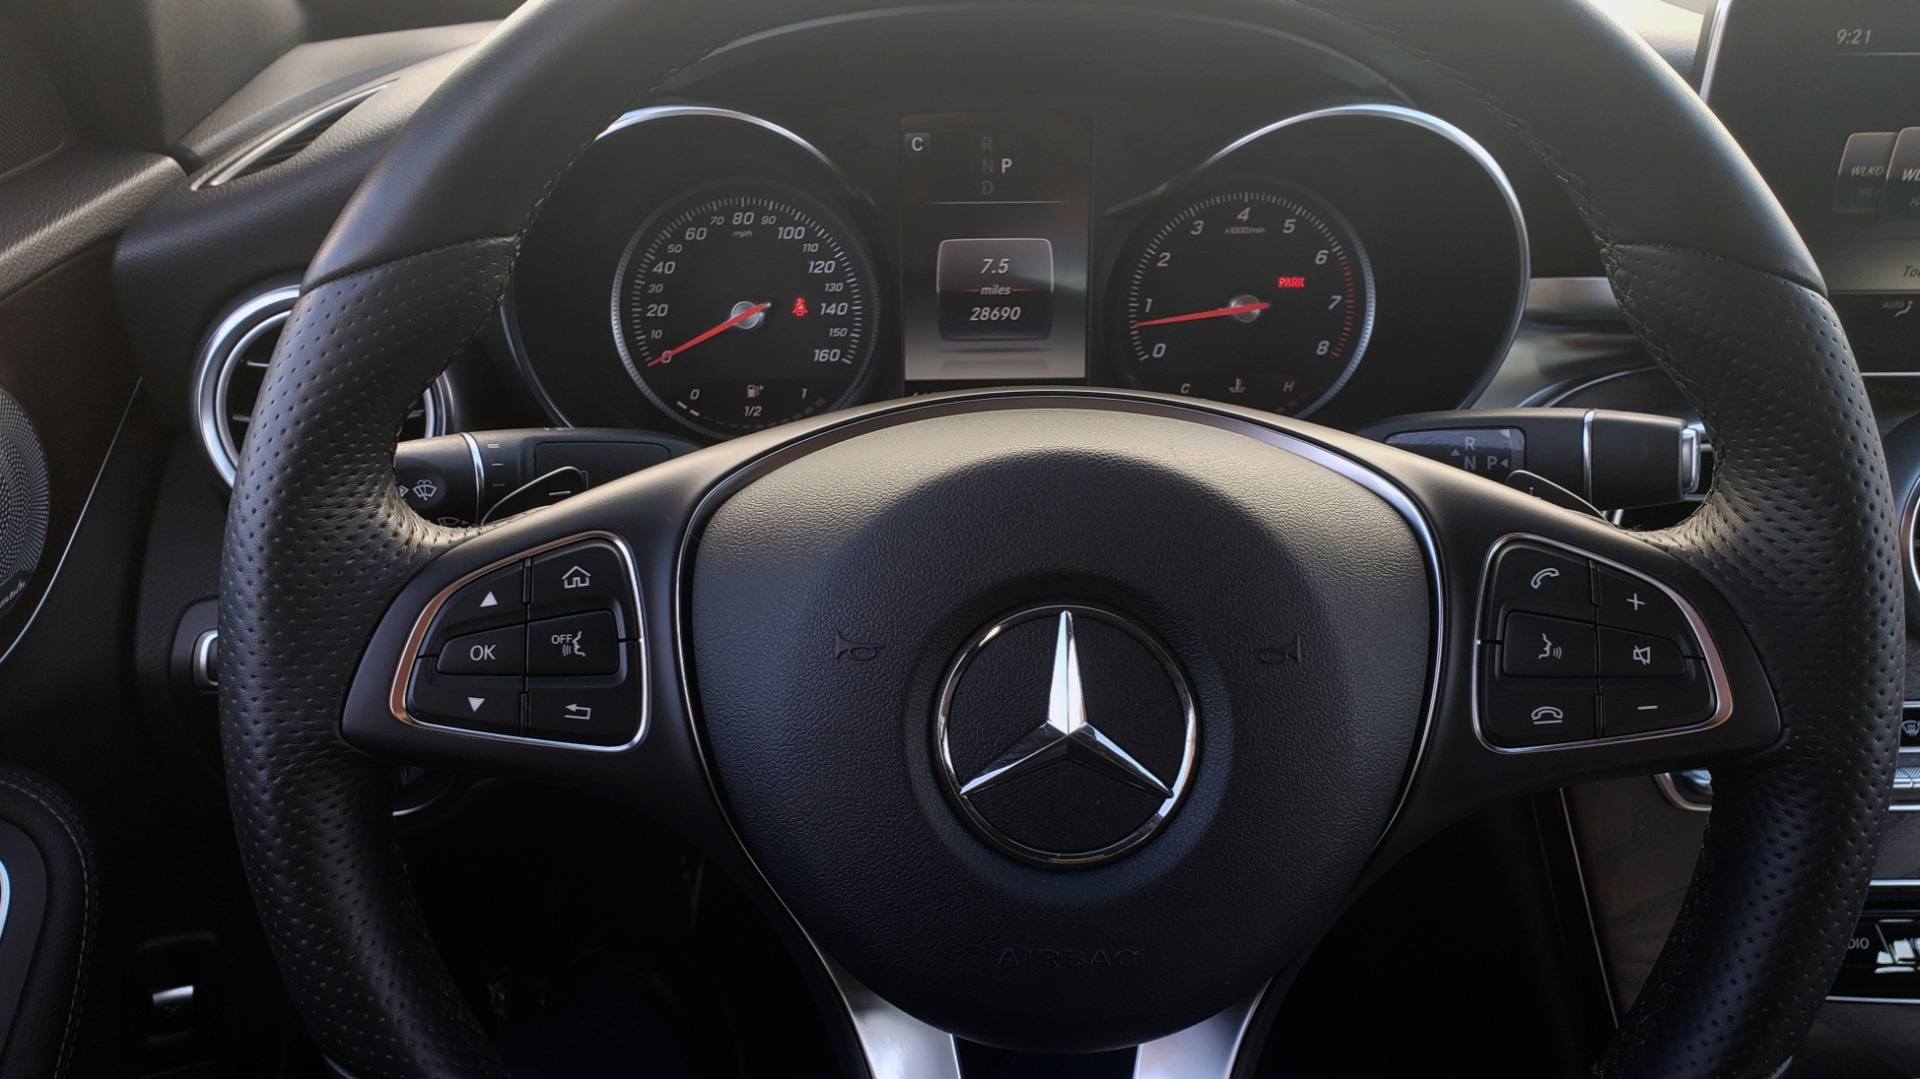 Used 2018 Mercedes-Benz C-Class C 300 PREMIUM / NAV / PANO-ROOF / AMG LINE / MULTIMEDIA for sale $28,235 at Formula Imports in Charlotte NC 28227 39